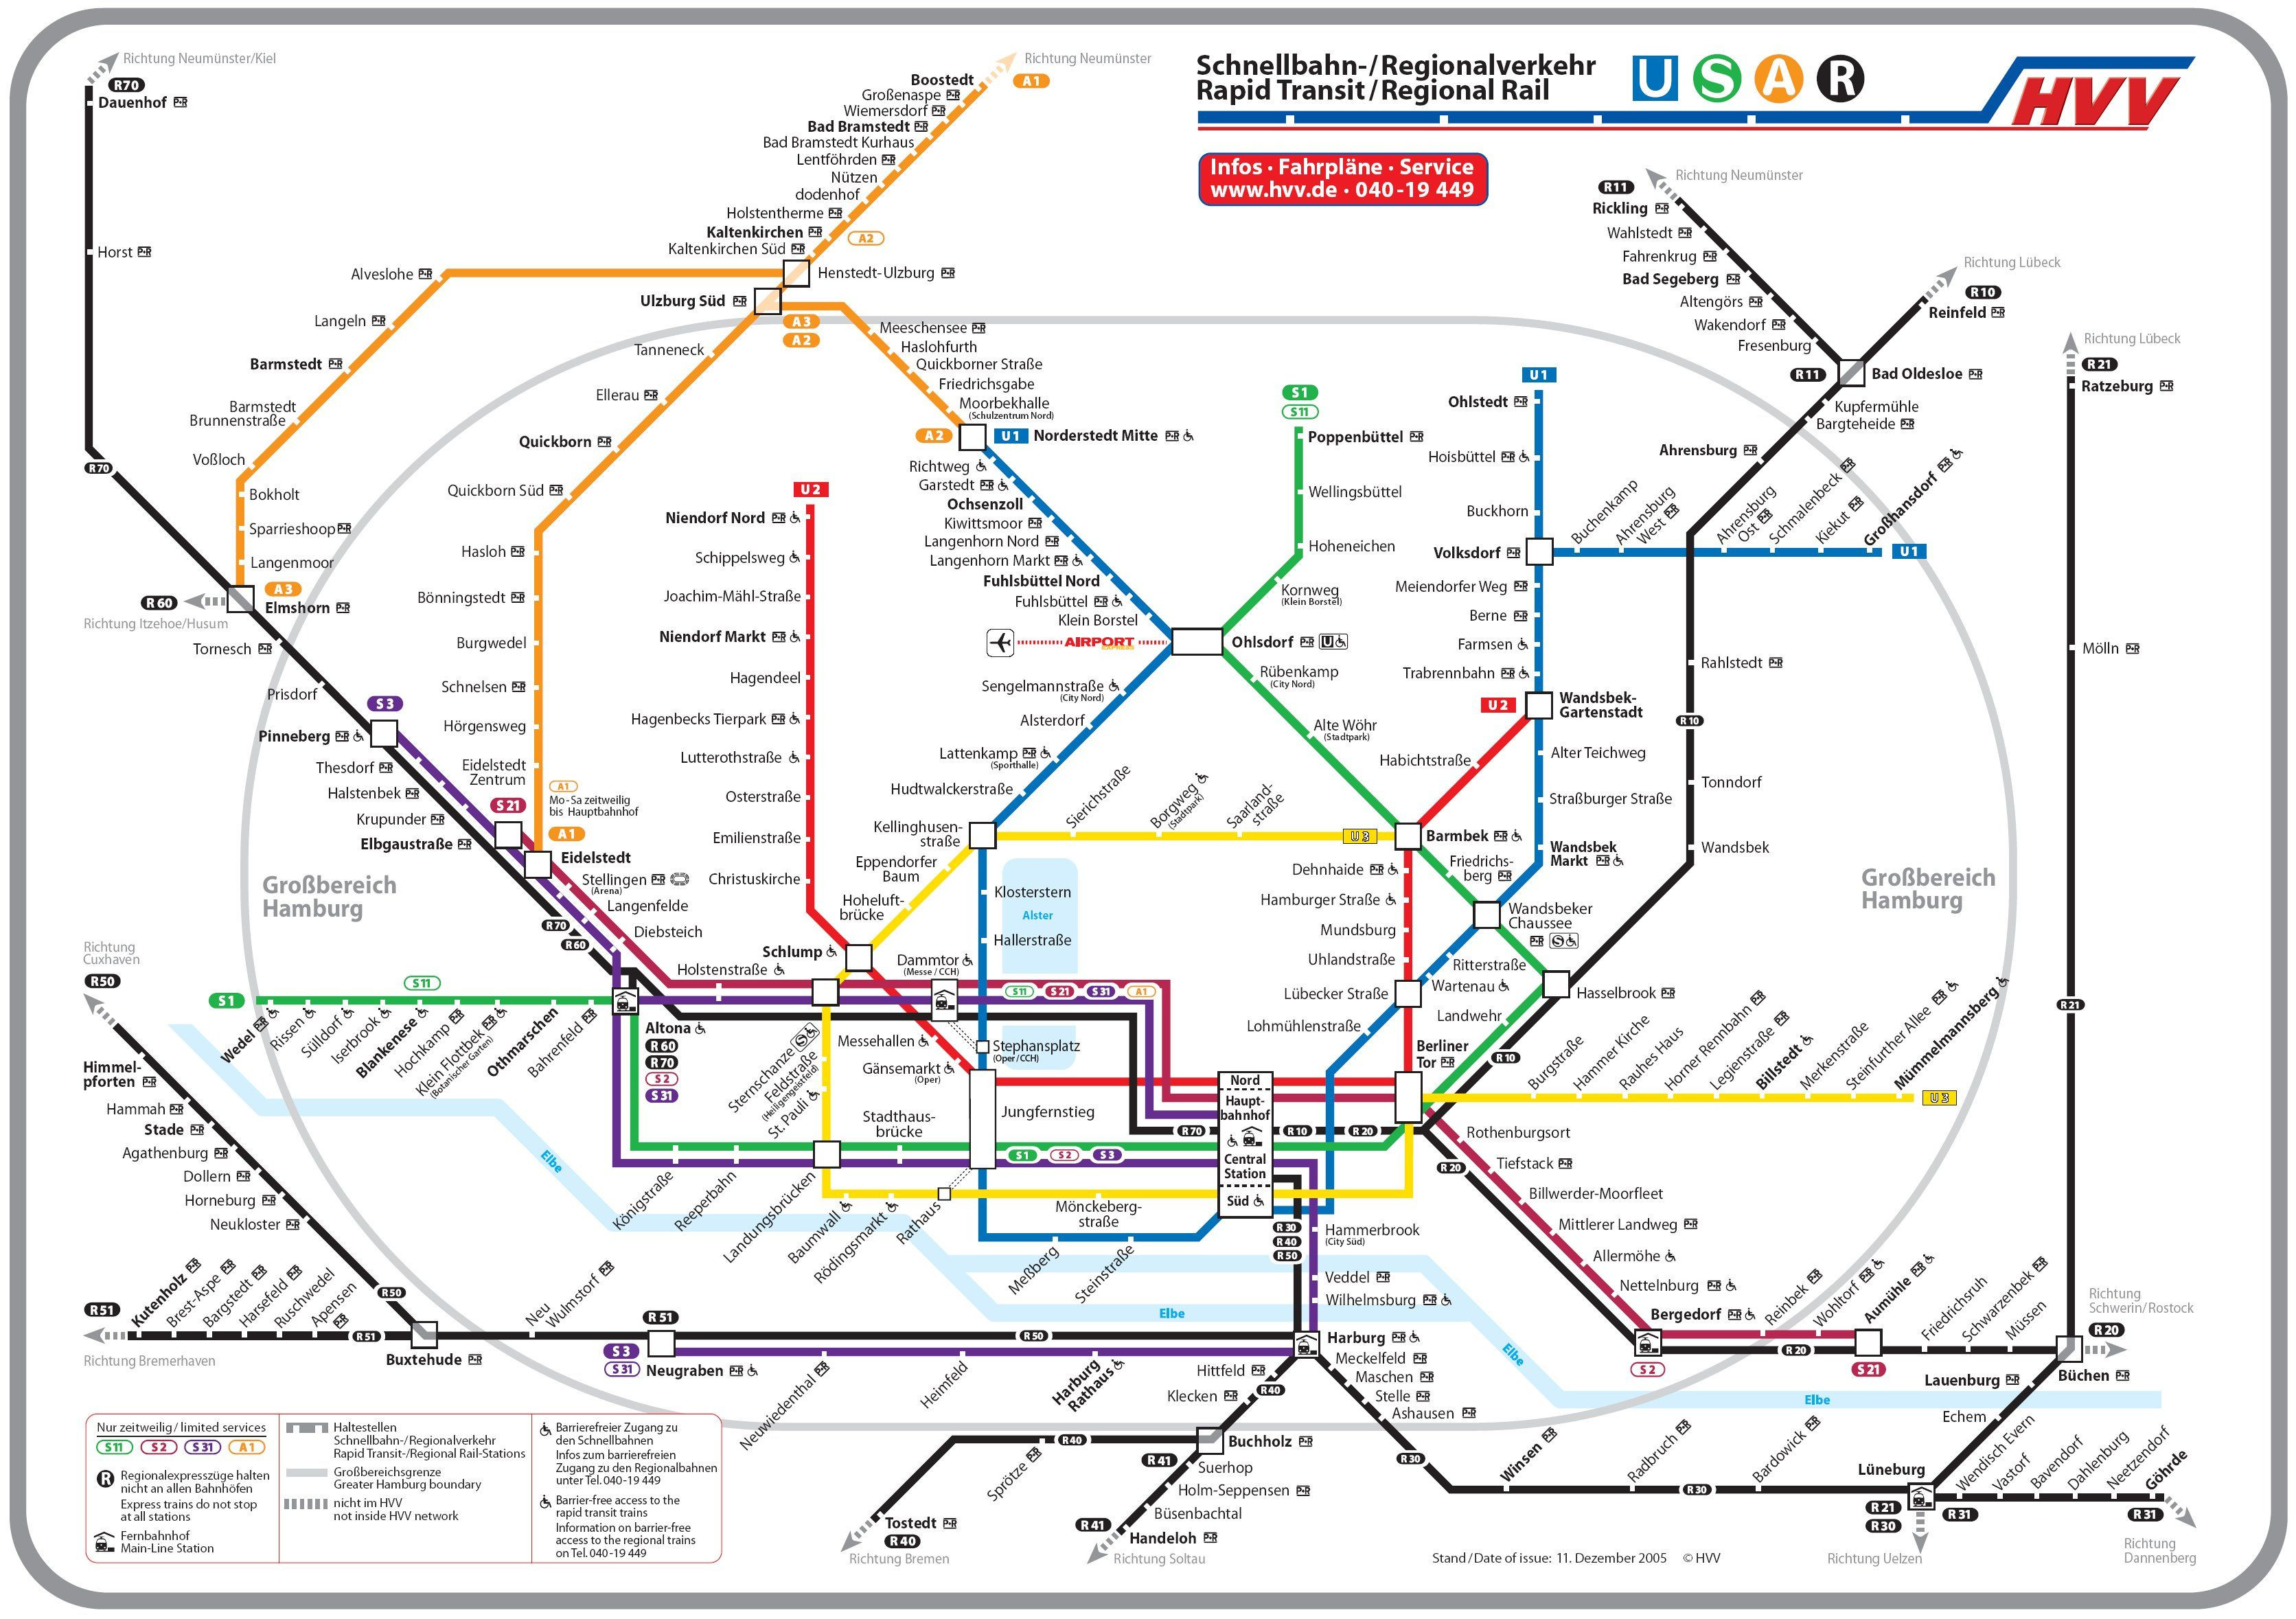 Printable Tube Map 2014 Best Of Hamburg Bahn Map Print As Poster